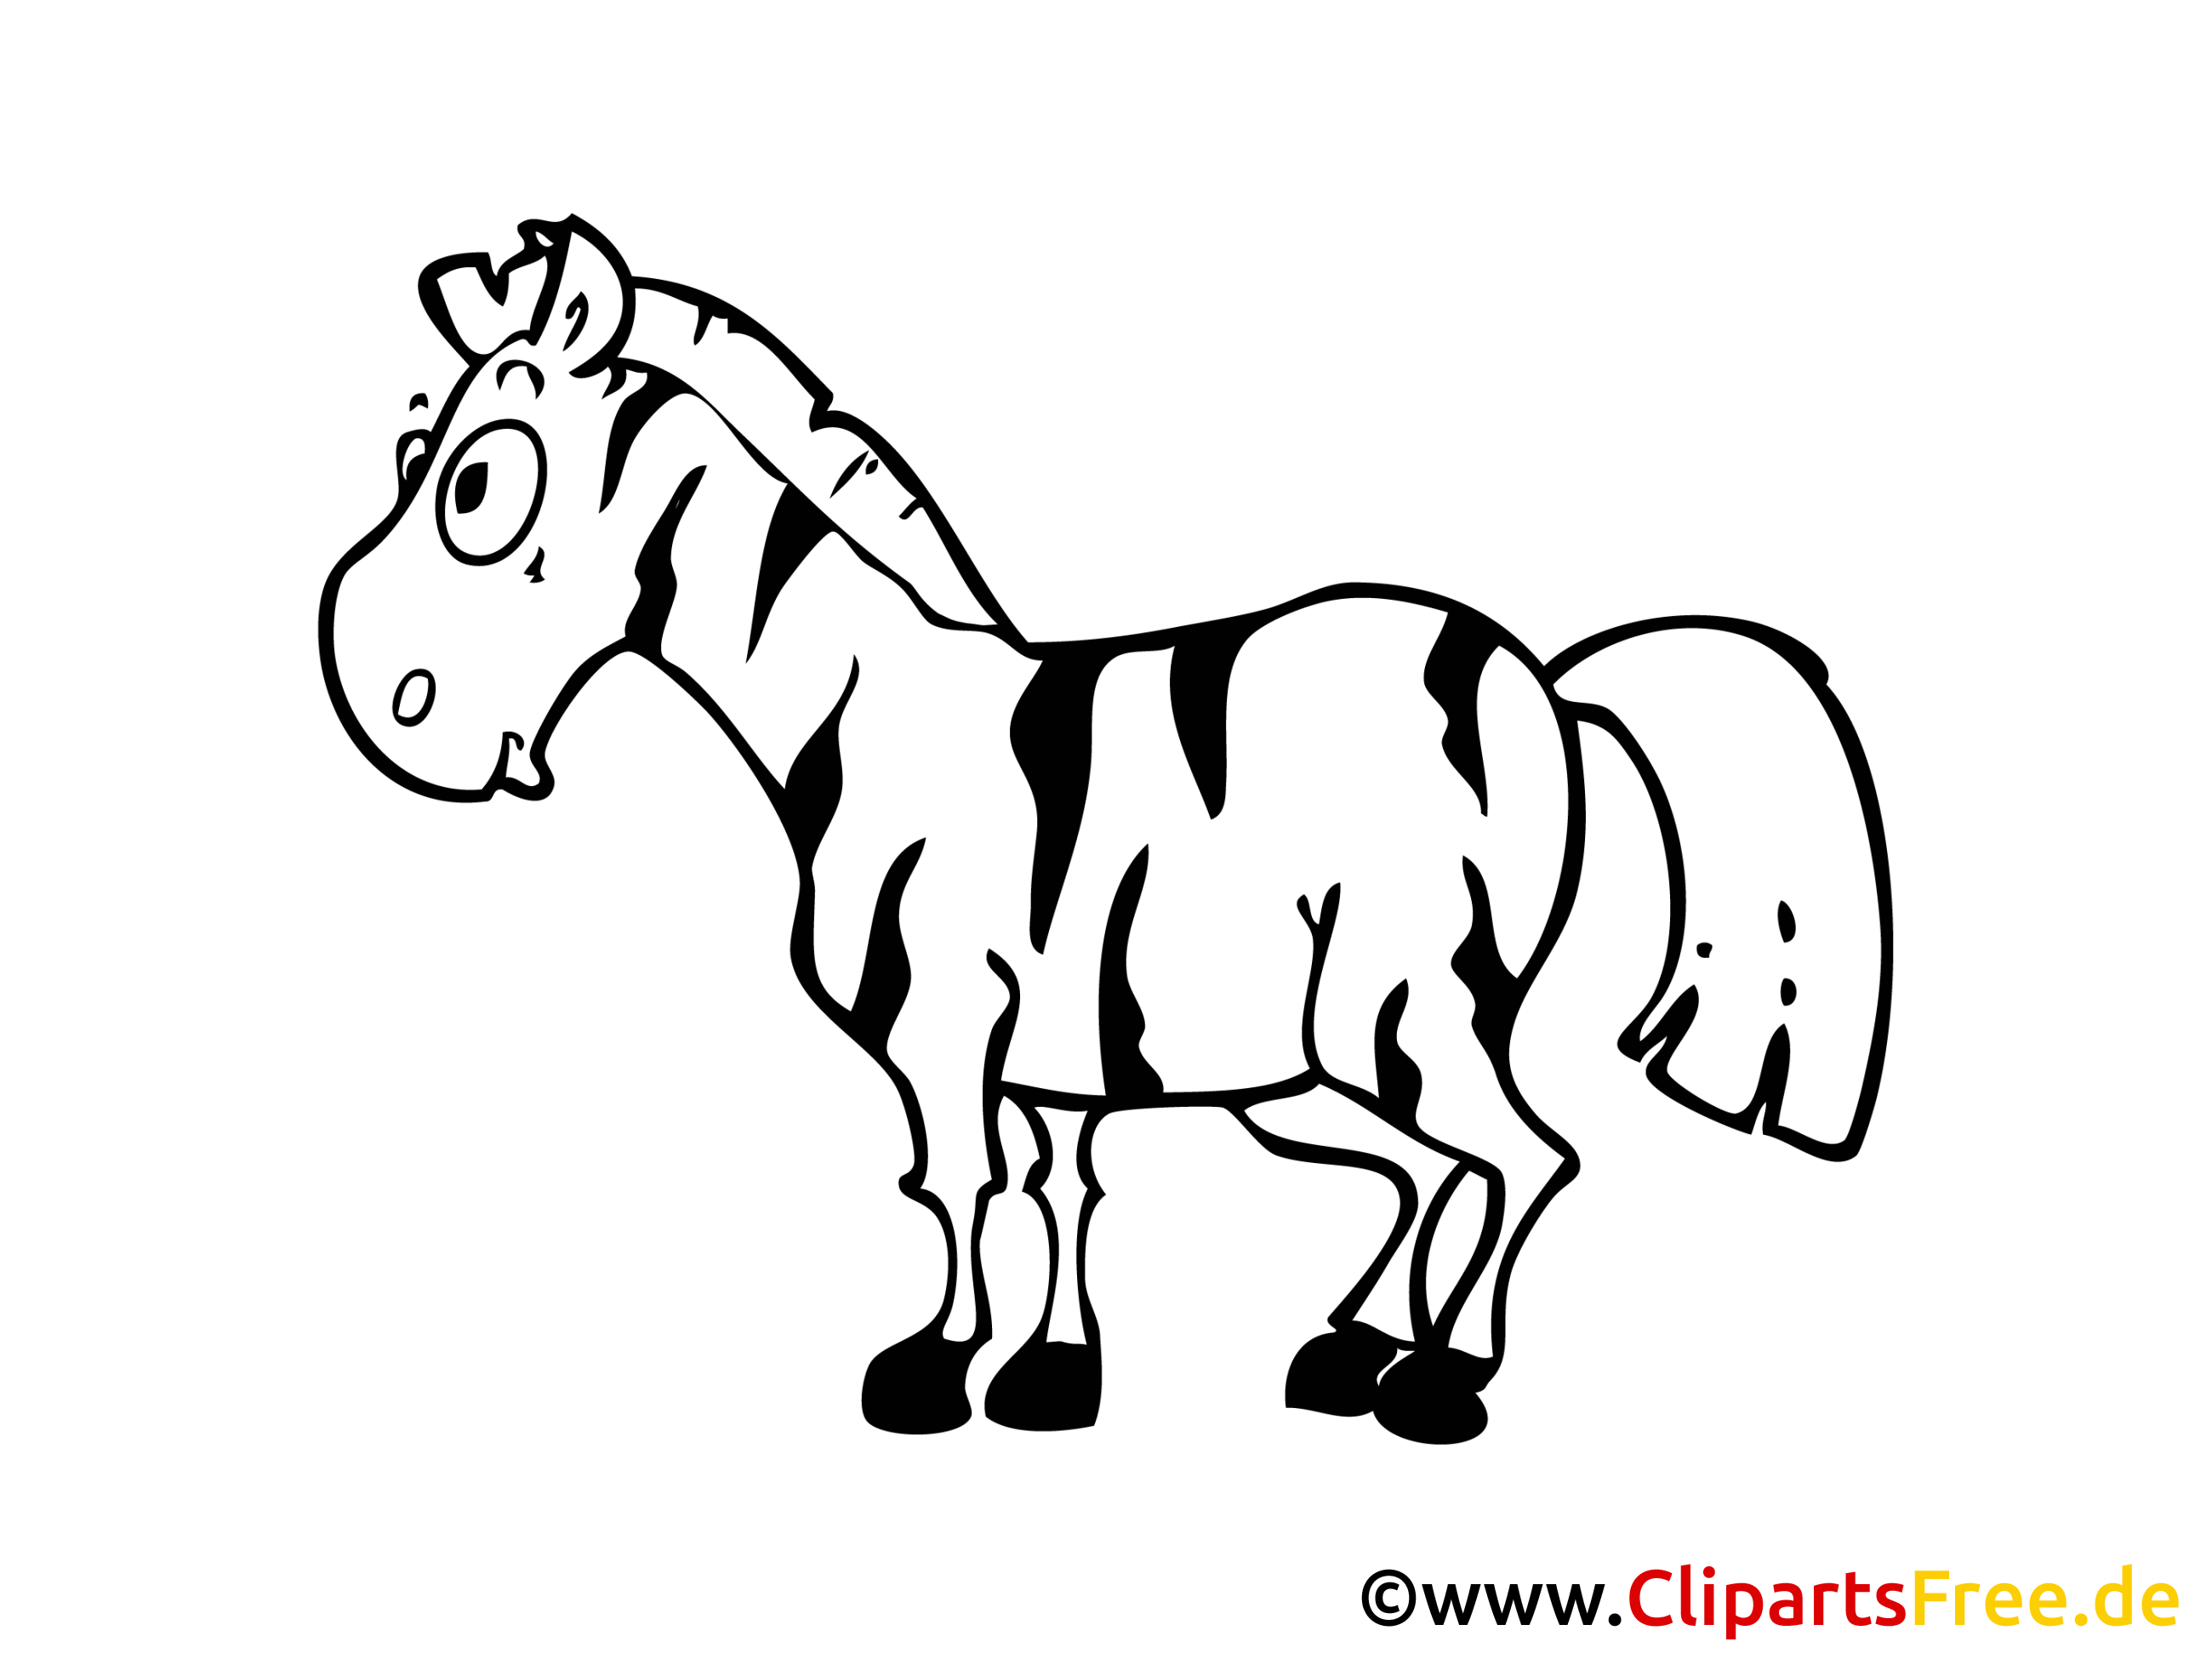 Zebraafbeelding, Clipart, Illustratie, Strip, Cartoon gratis